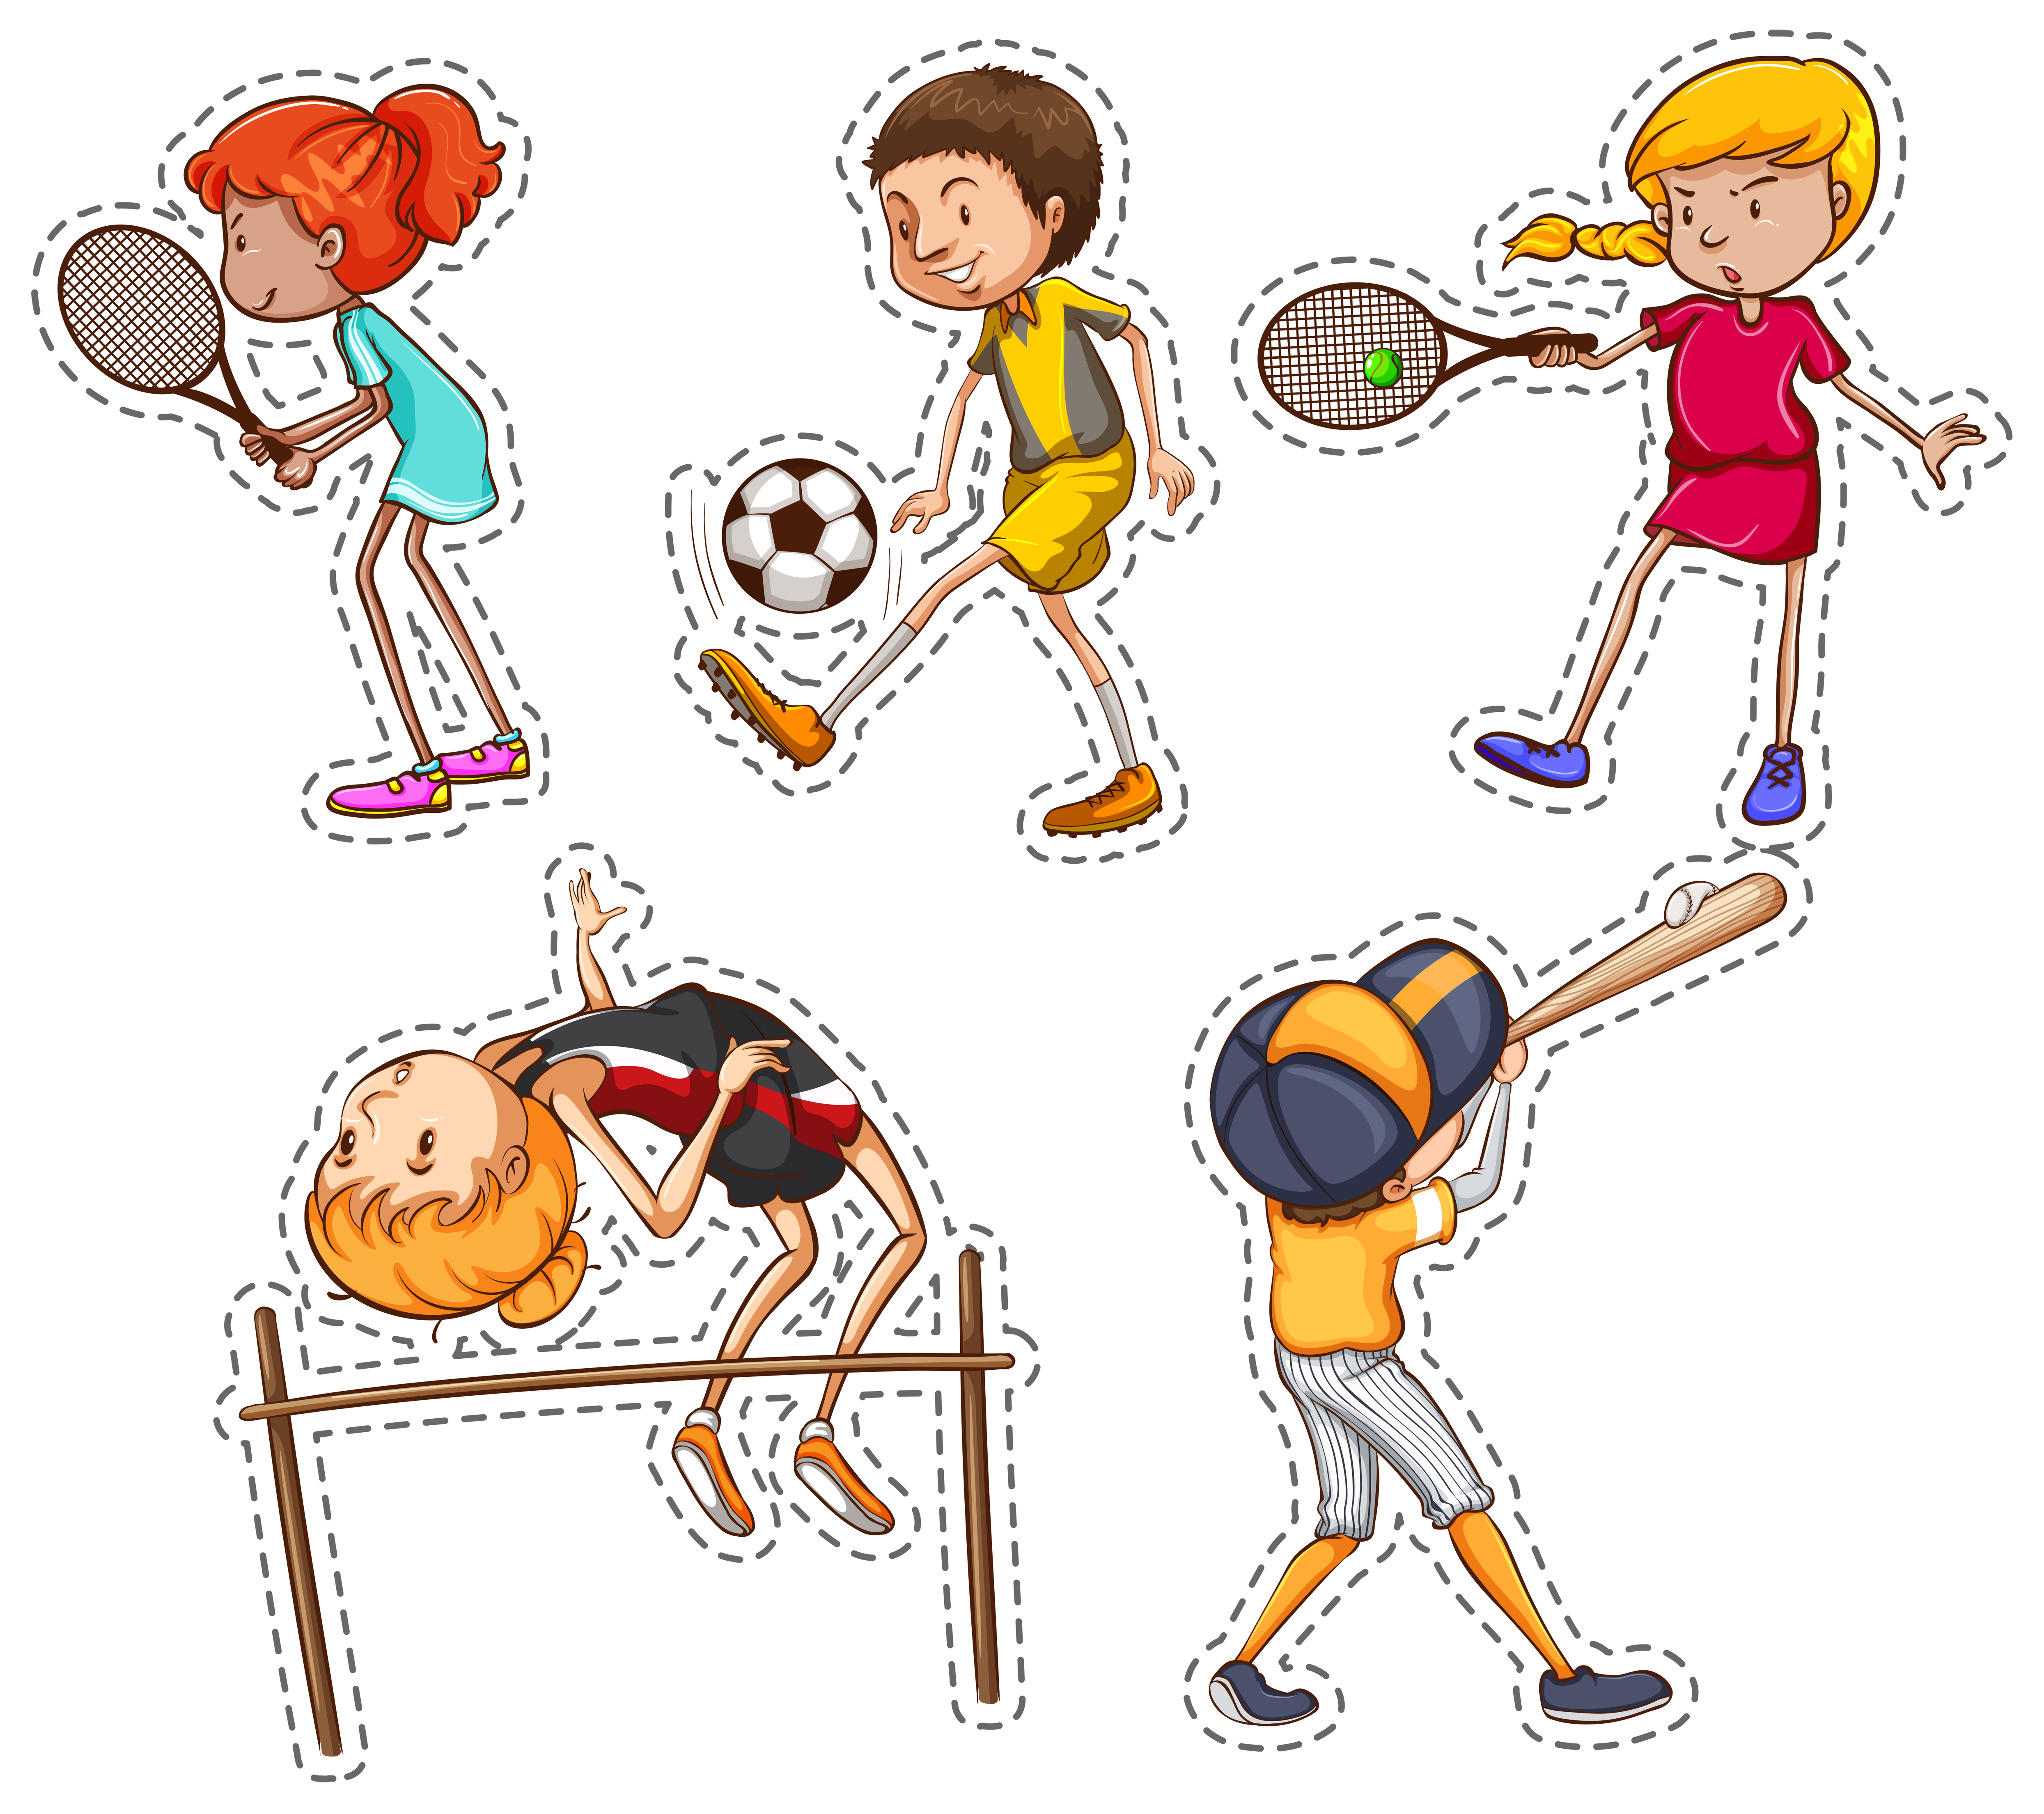 sports different kinds doing vector illustration soccer ball players clipart vectors football freepik person kind colours system non save psd